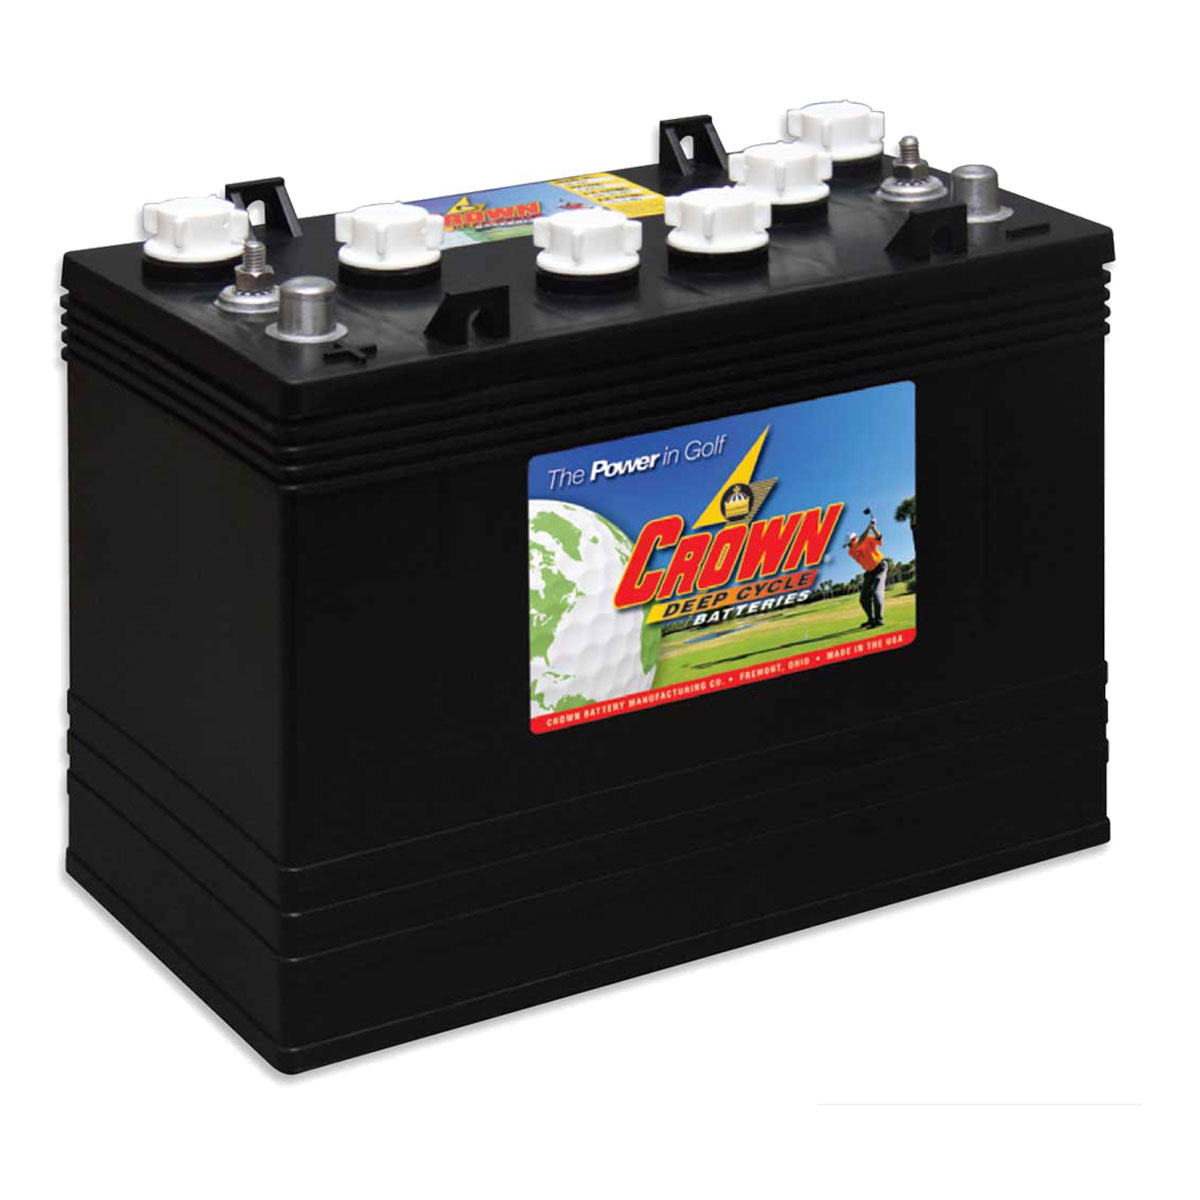 Crown-CR-GC155-Golf-Battery.jpg